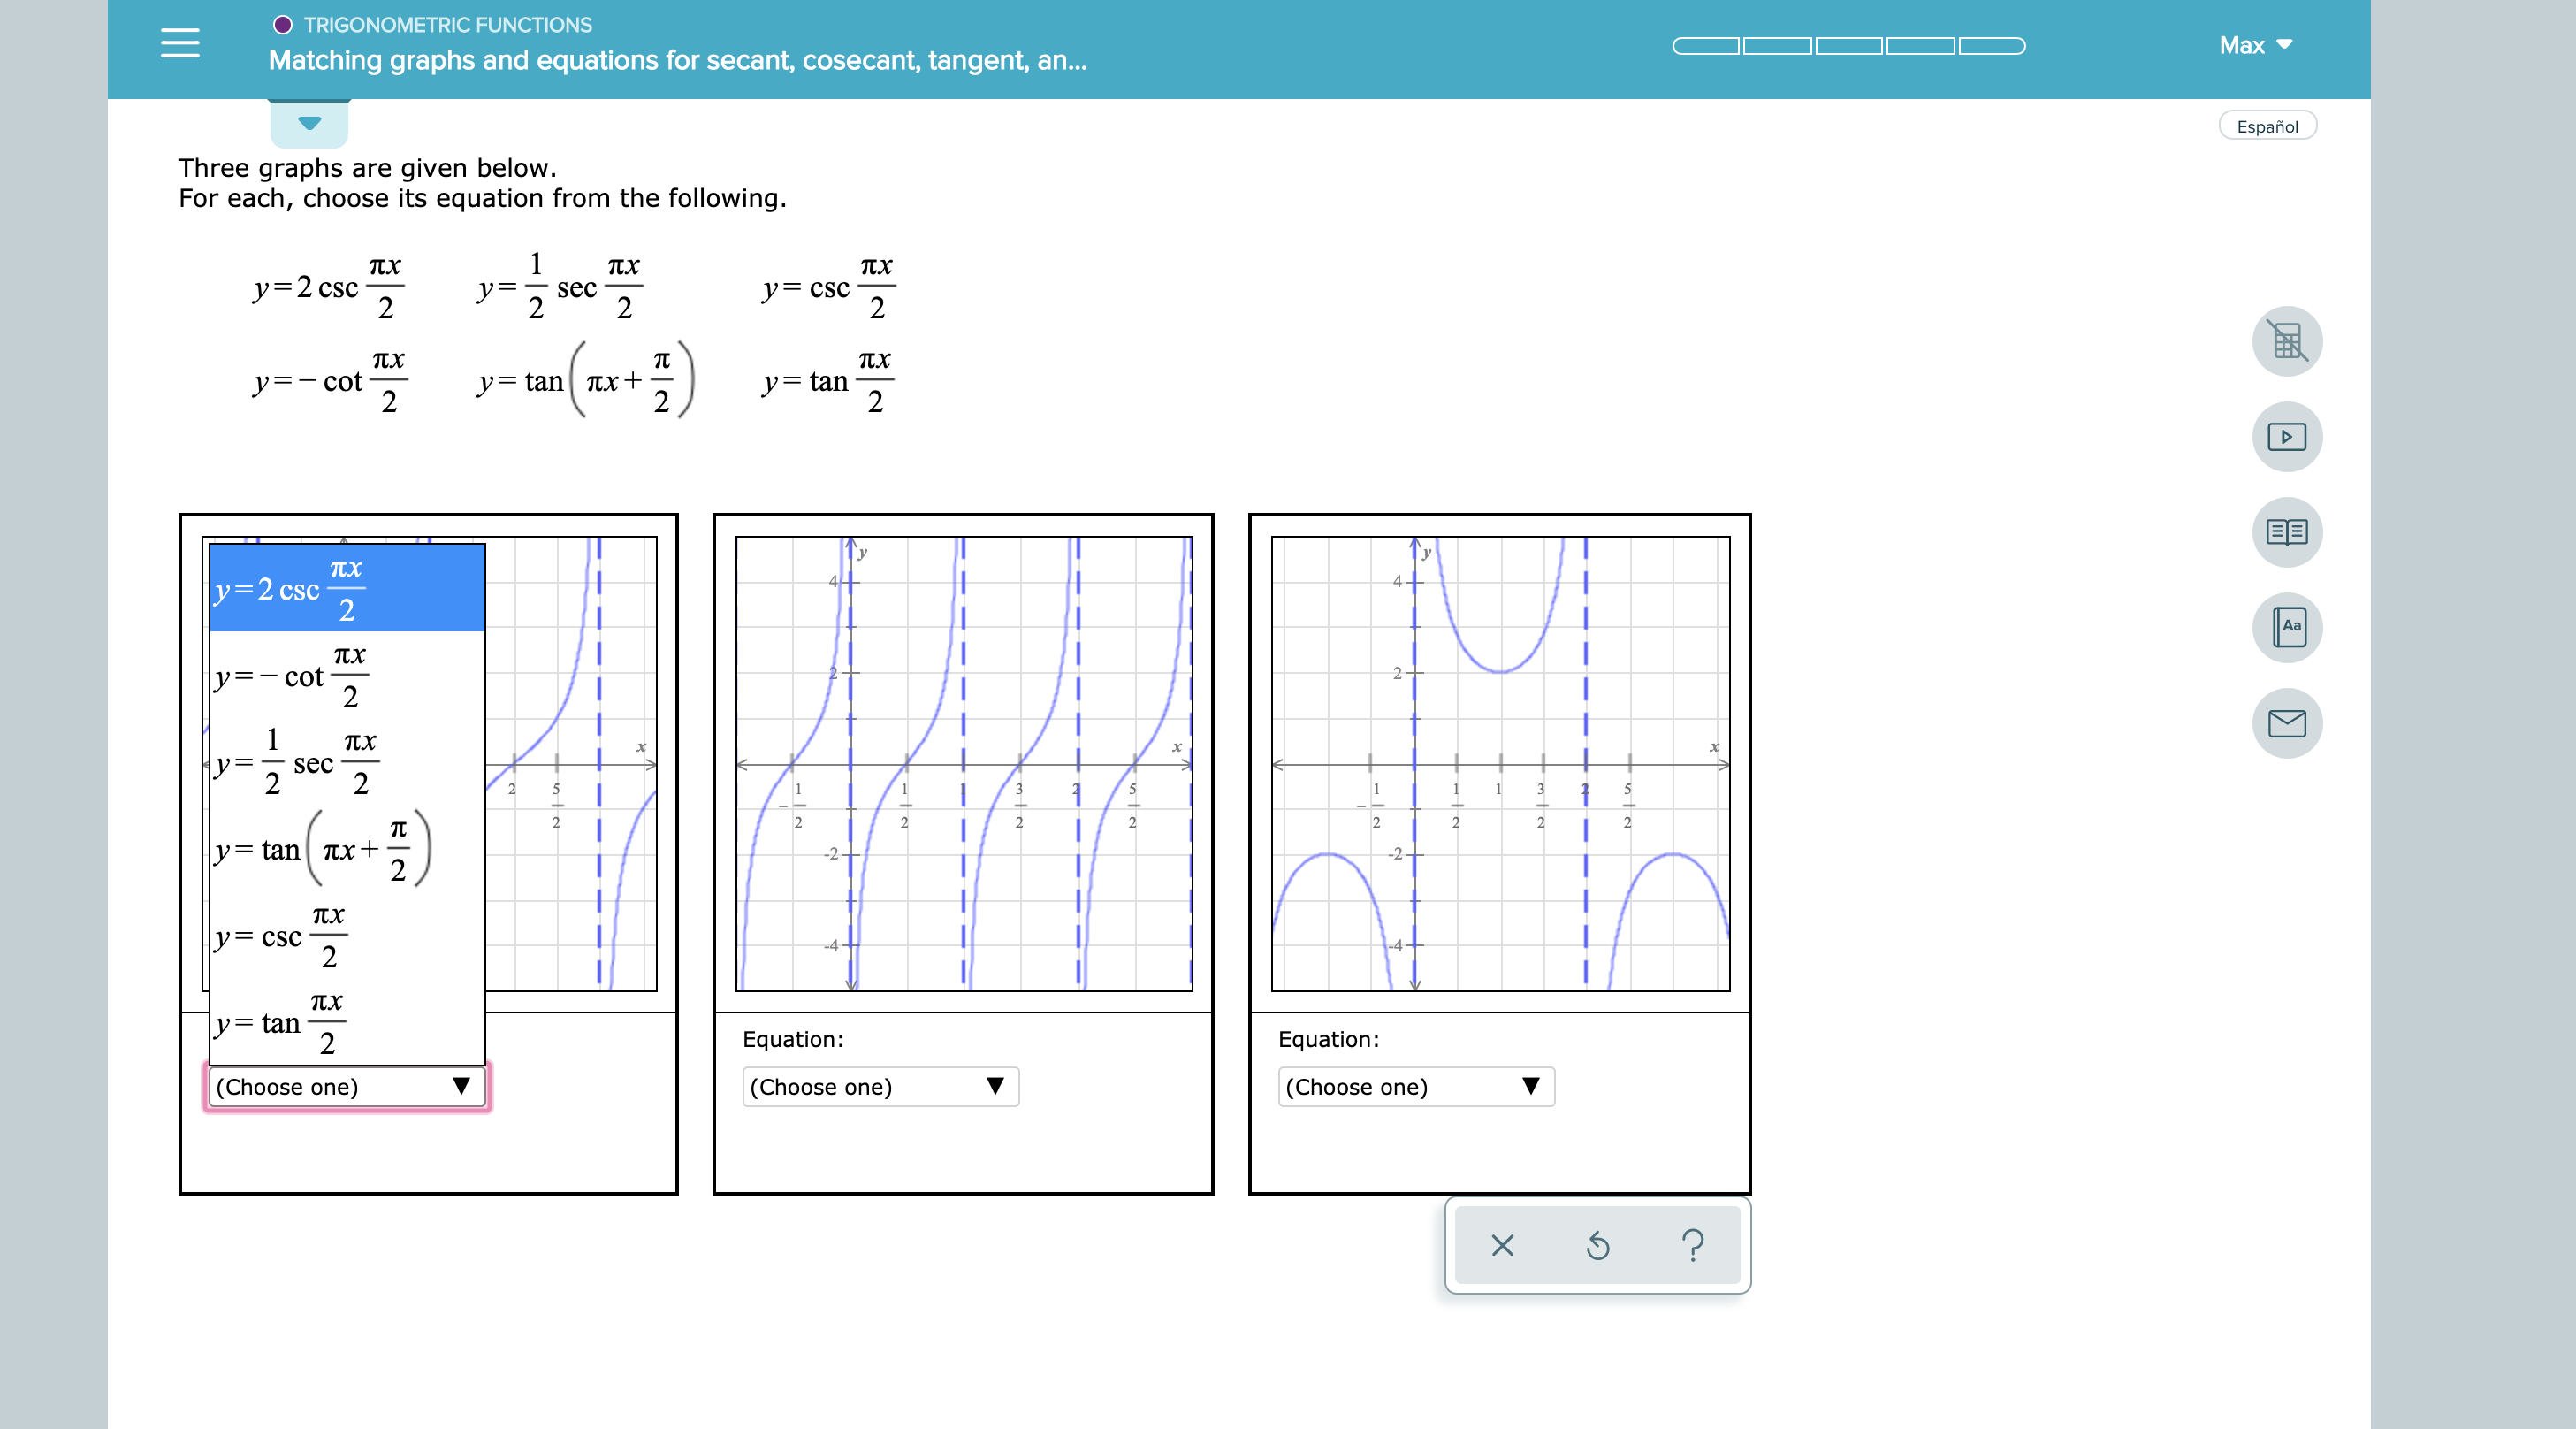 O TRIGONOMETRIC FUNCTIONS Max Matching graphs and equations for secant, cosecant, tangent, an... Español Three graphs are given below. For each, choose its equation from the following. 1 TX Tx y=2 csc 2 y= cSC 2 sec 2 y=tan 2 ytan Tx+ 2 ア=ー cot 2 TX 4 y=2 csc Aa TX cot 2- 1 sec 2 1 2 1 1 1 3 2 2 2 2 2 2 2 2 y=tanTx+ 2 -2 2 yCSC 2 -4 y= tan 2 Equation: Equation: |(Choose one) (Choose one) (Choose one) ?